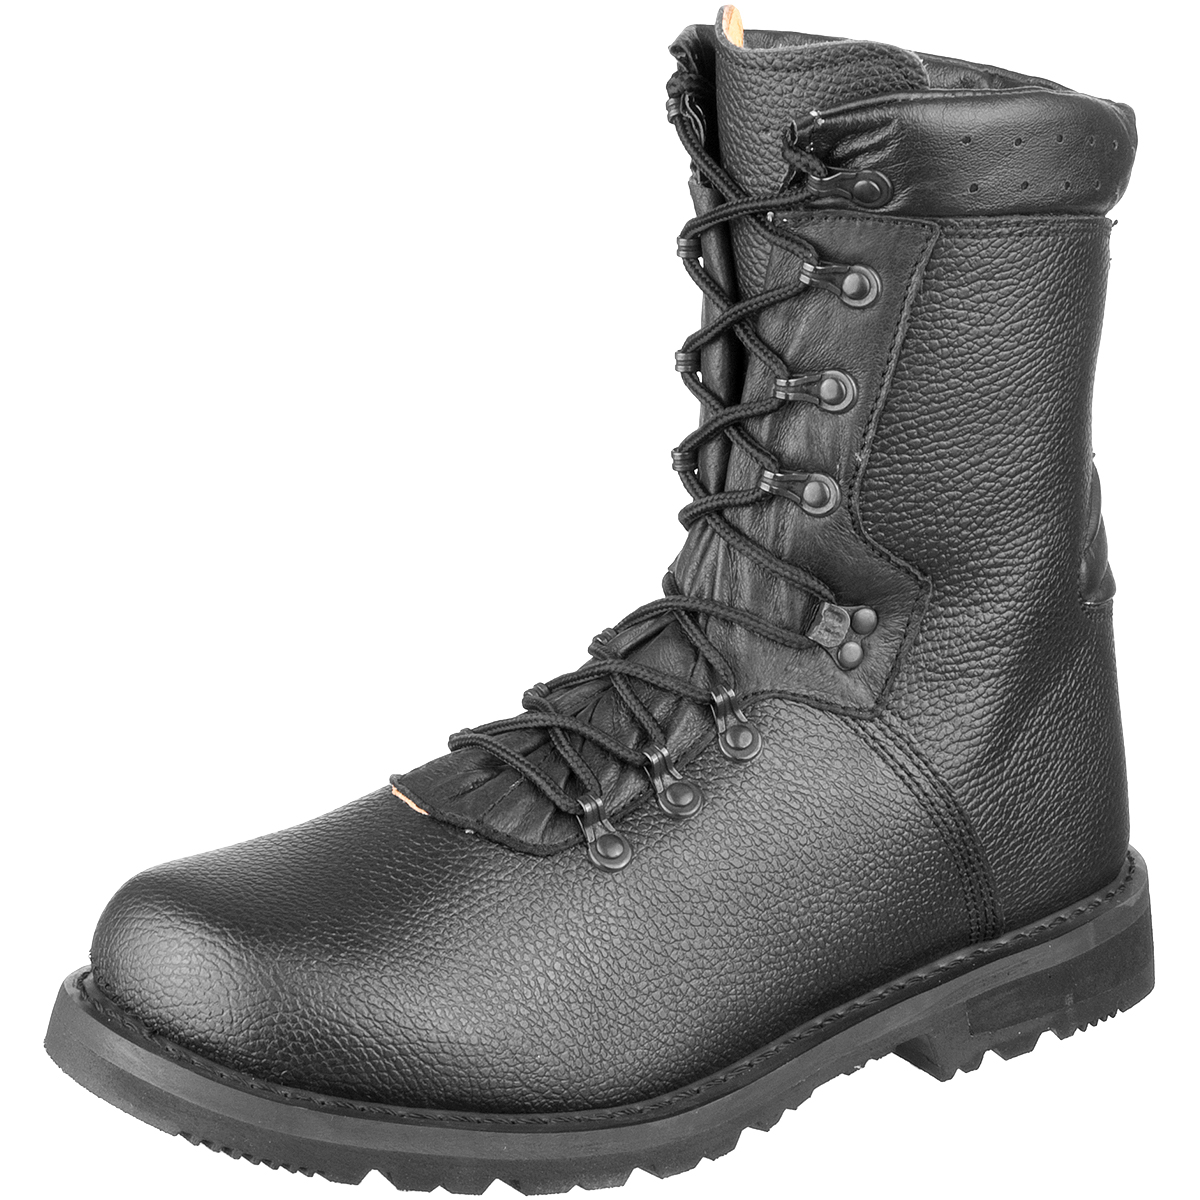 Brandit Bw German Army Combat Boots Model 2000 Leather